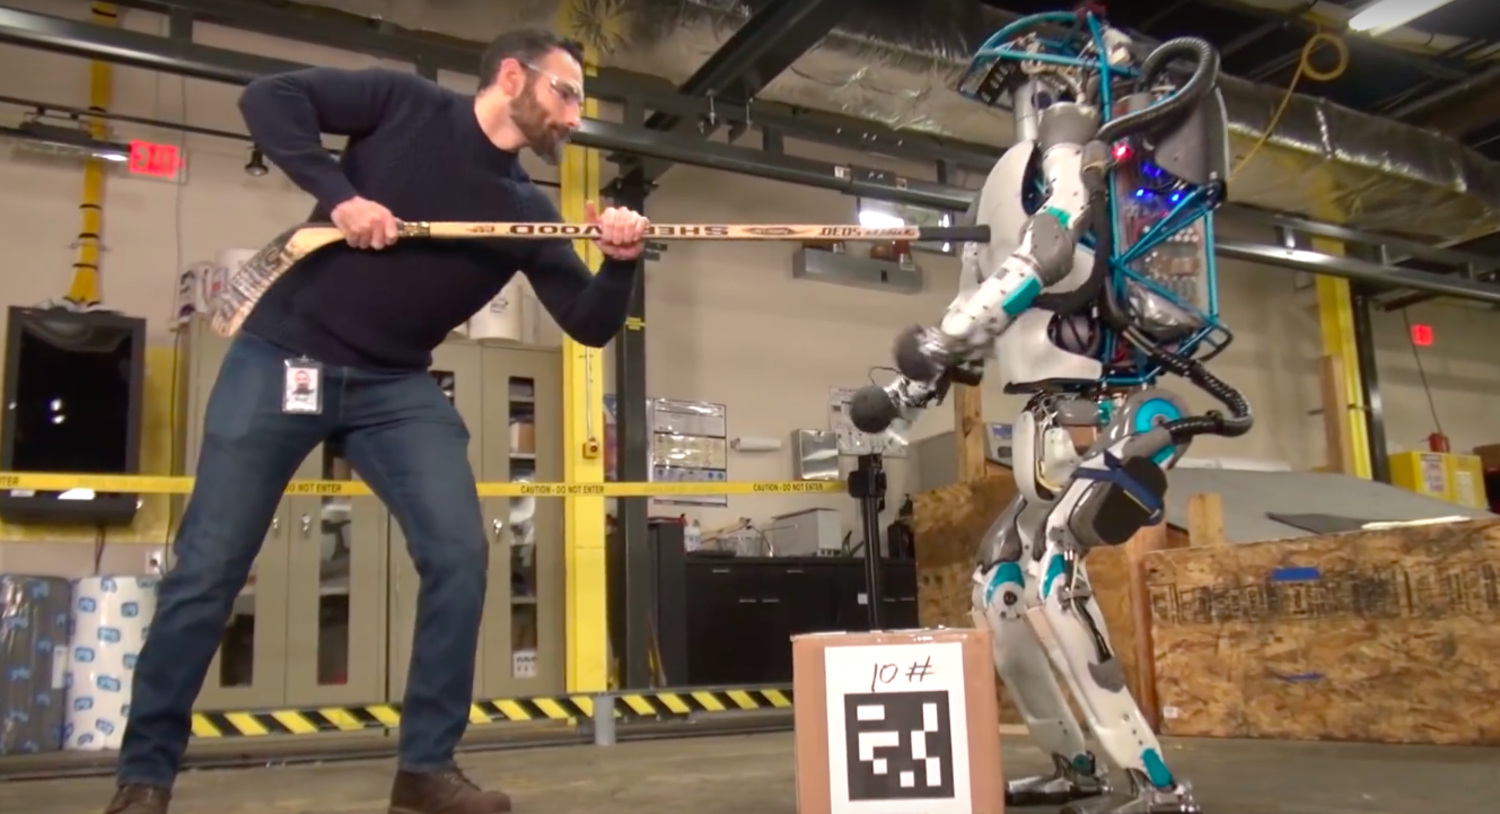 Cruel Human Bullies Poor Helpless Robot Again